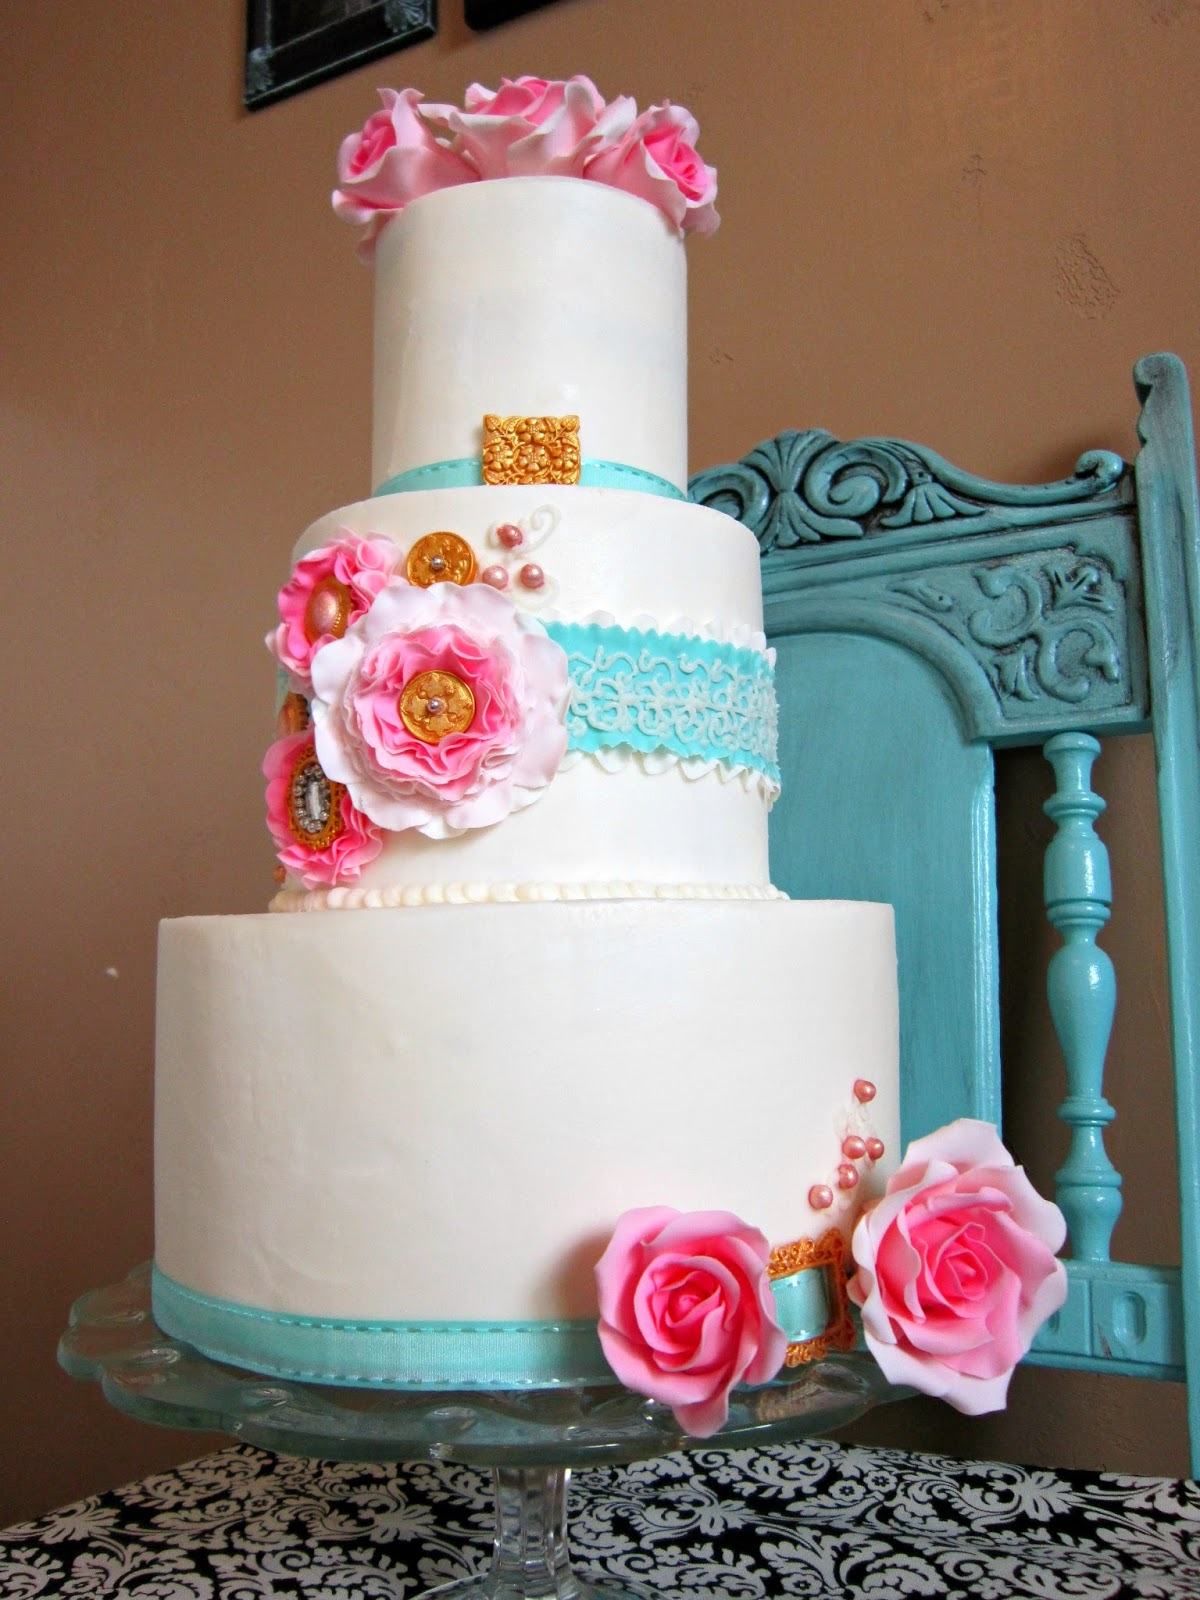 Delectable Cakes: Shabby Chic Wedding Cake